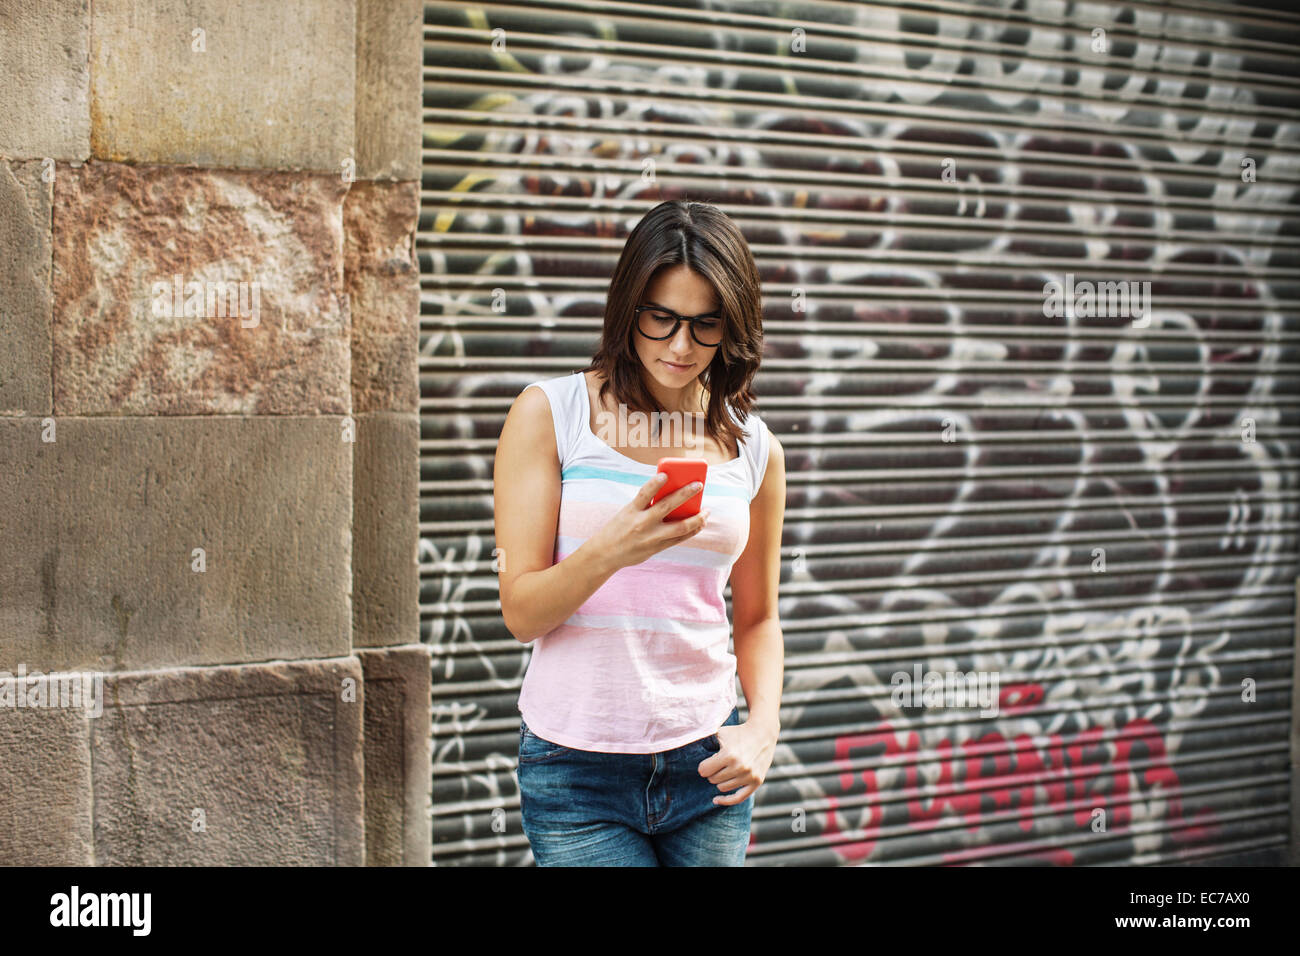 Young woman reading SMS - Stock Image